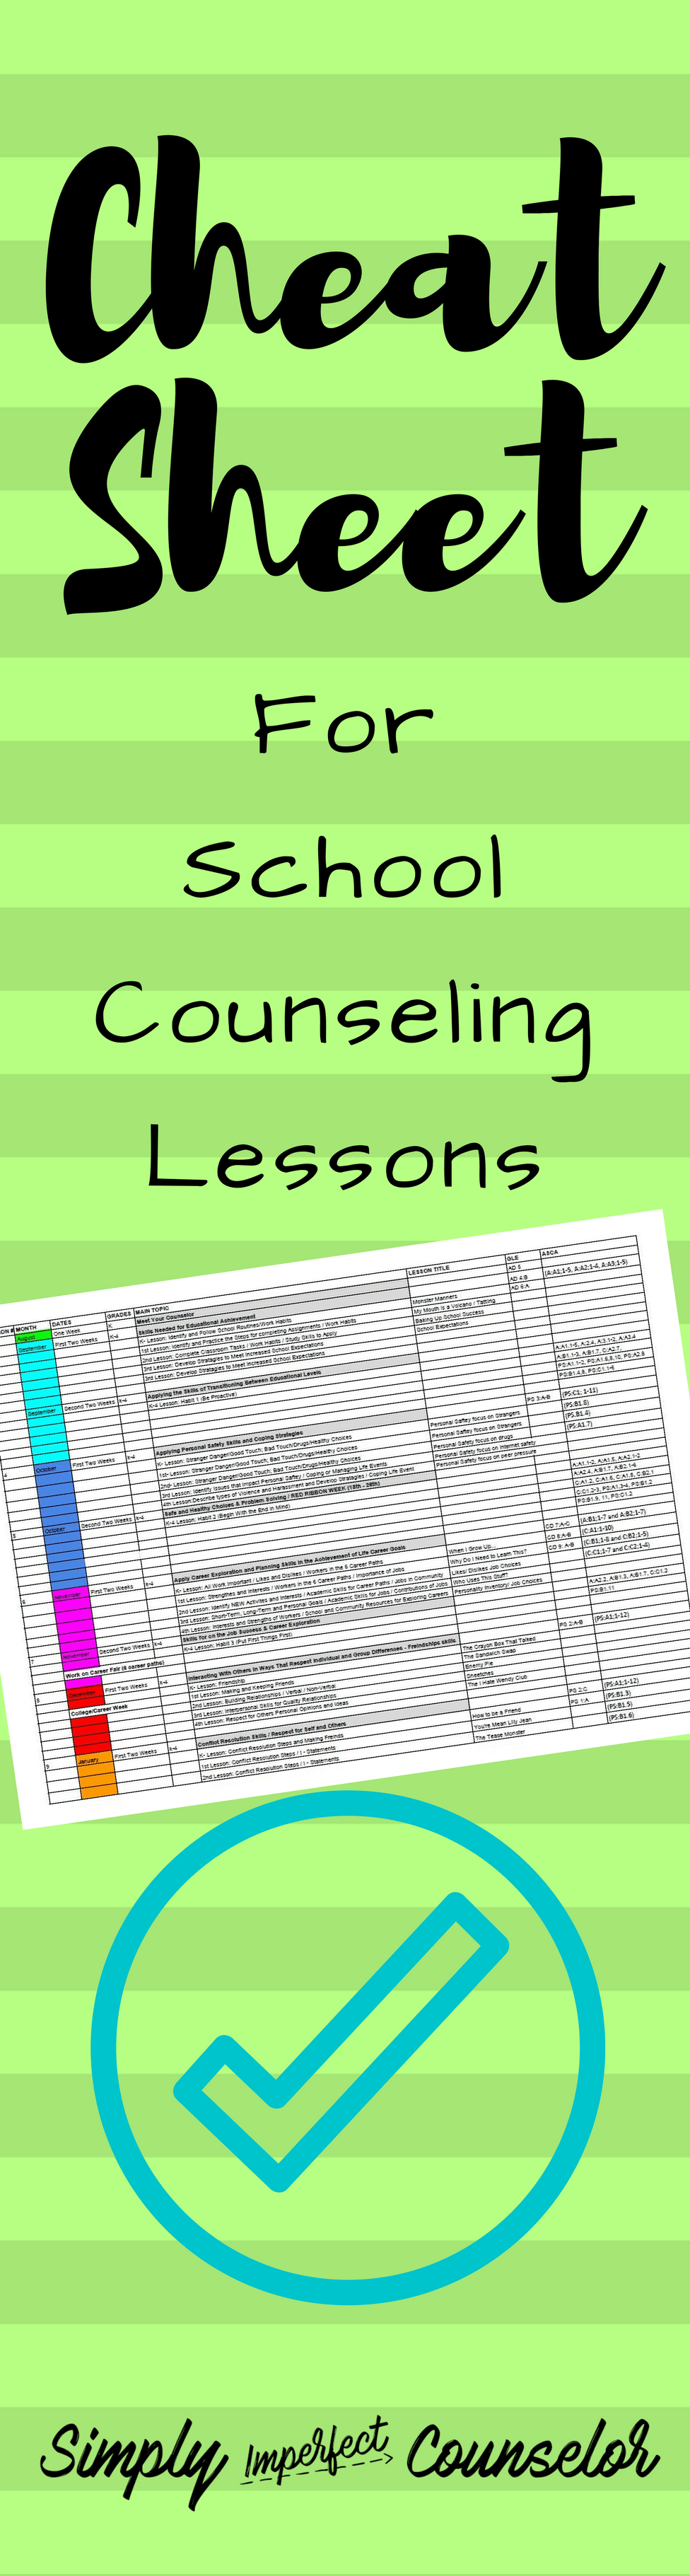 medium resolution of Cheat Sheet for School Counseling Lessons - Entire Elementary Planning